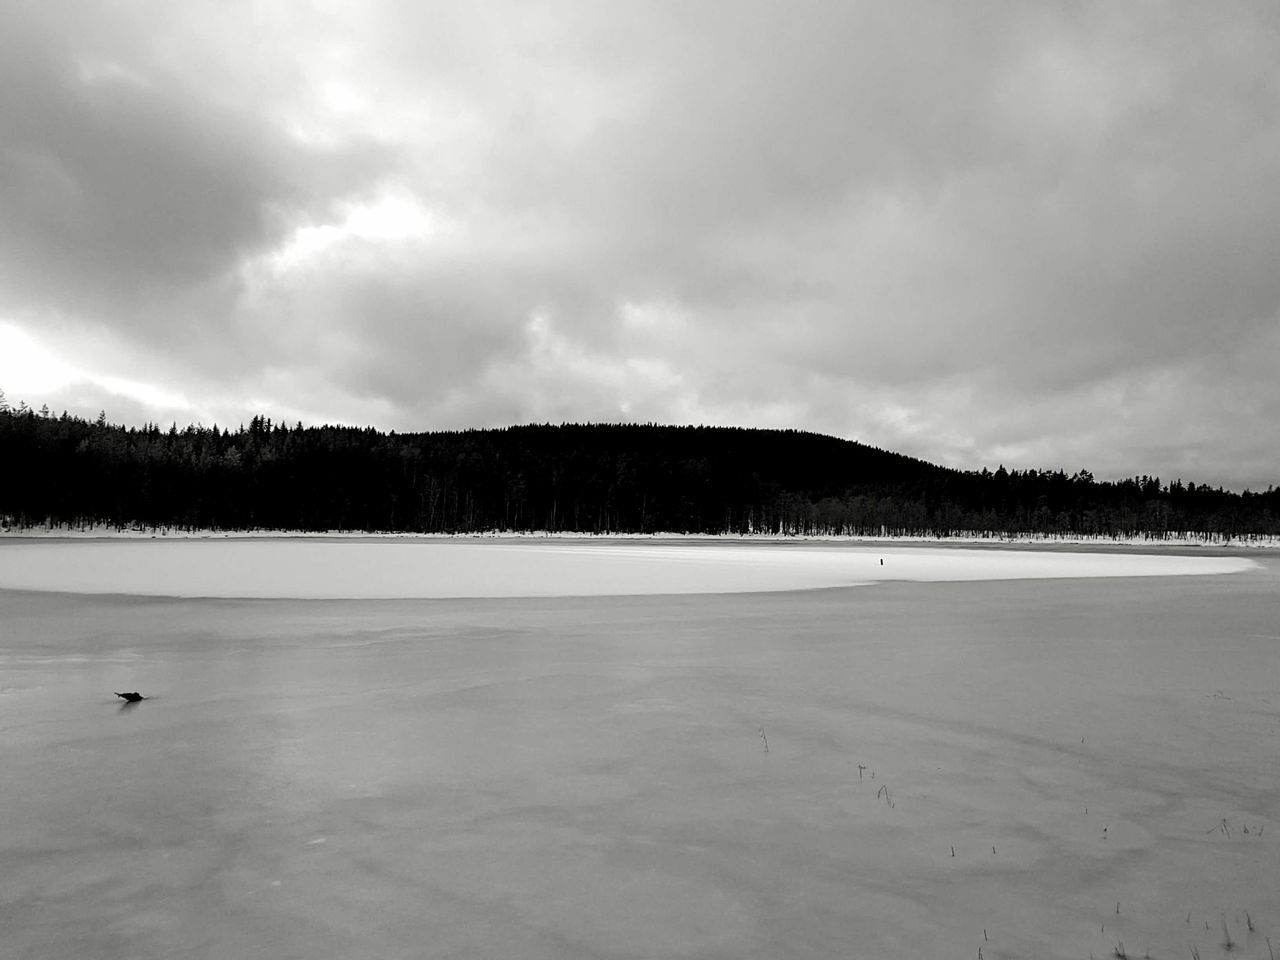 Landscape Nature Beauty In Nature Scenics Outdoors Sky Tree Tranquility Winter Monochrome Black And White Snow Lake Ice Miles Away Welcome To Black The Great Outdoors - 2017 EyeEm Awards